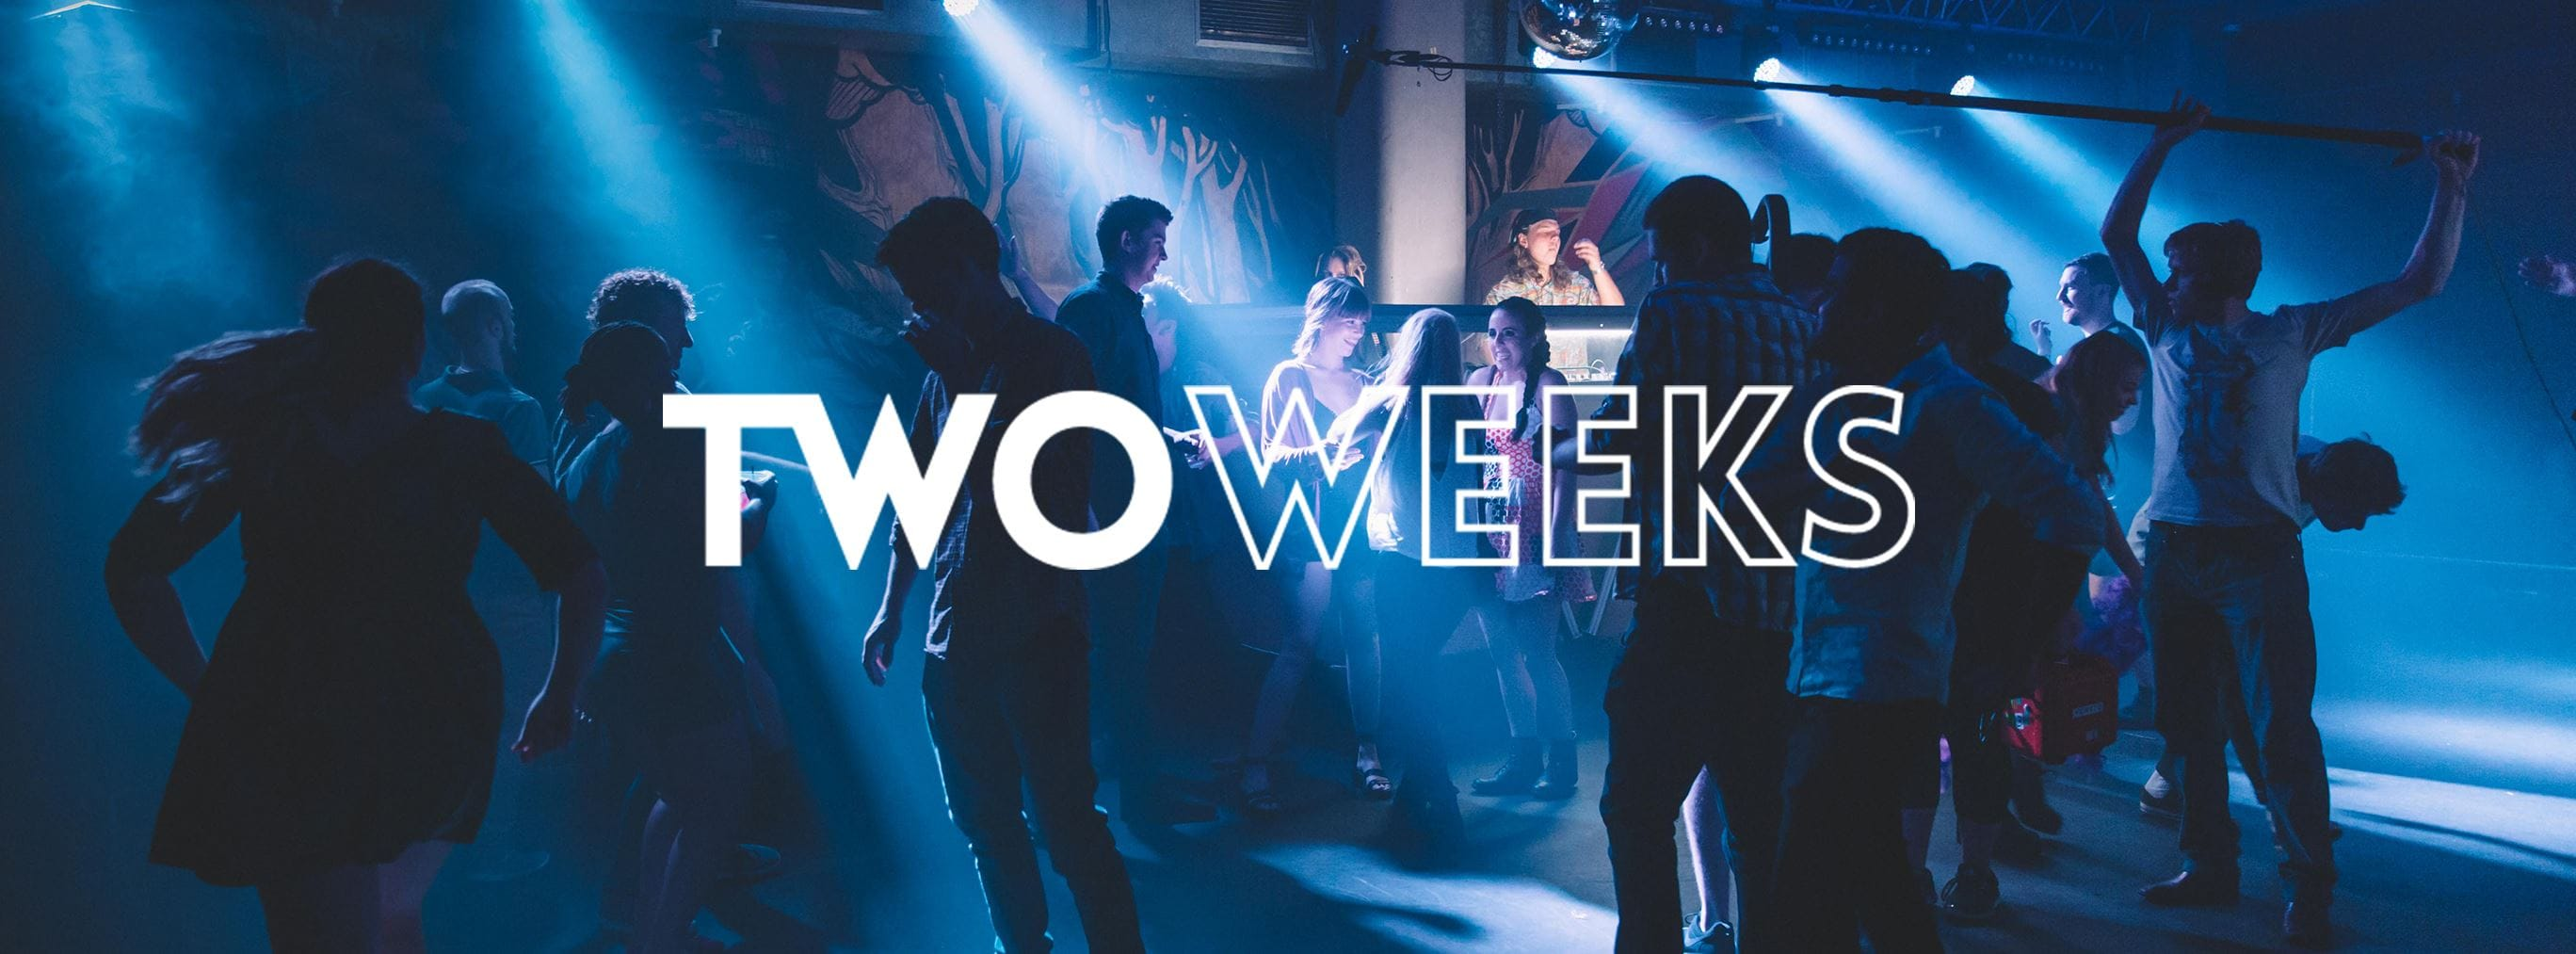 Two Weeks (2017)